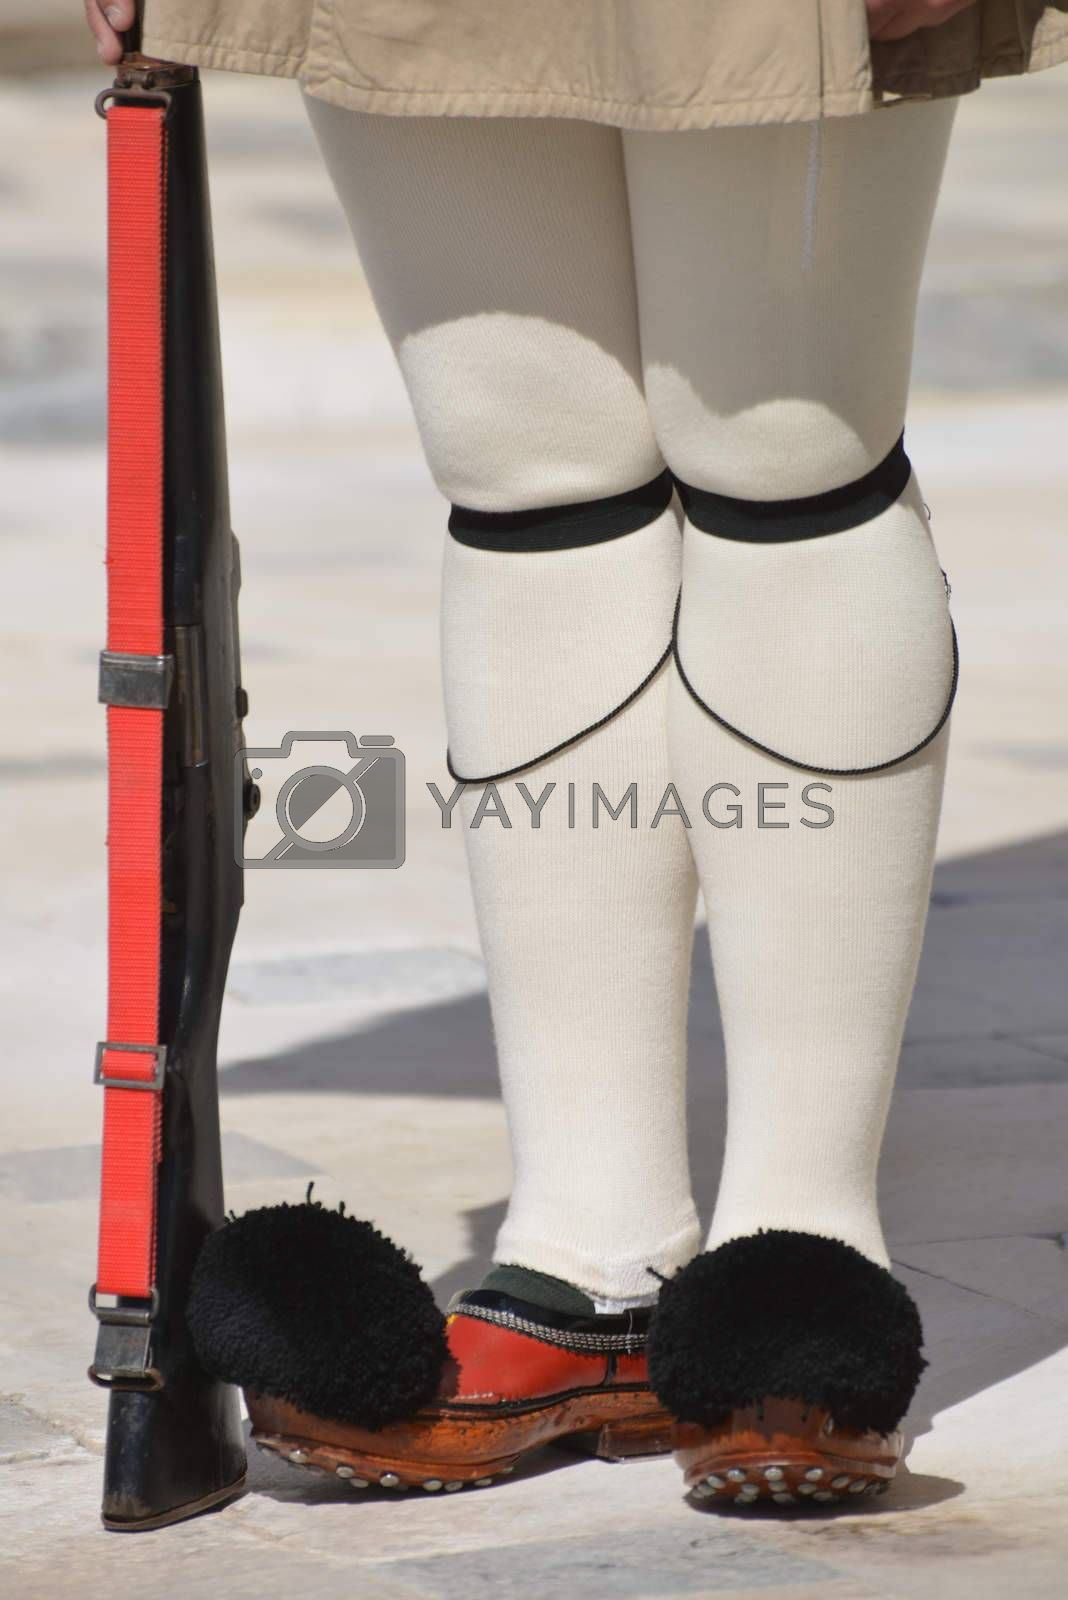 The legs of Evzoni Guard of the Greek Parliament, Athens, Greece